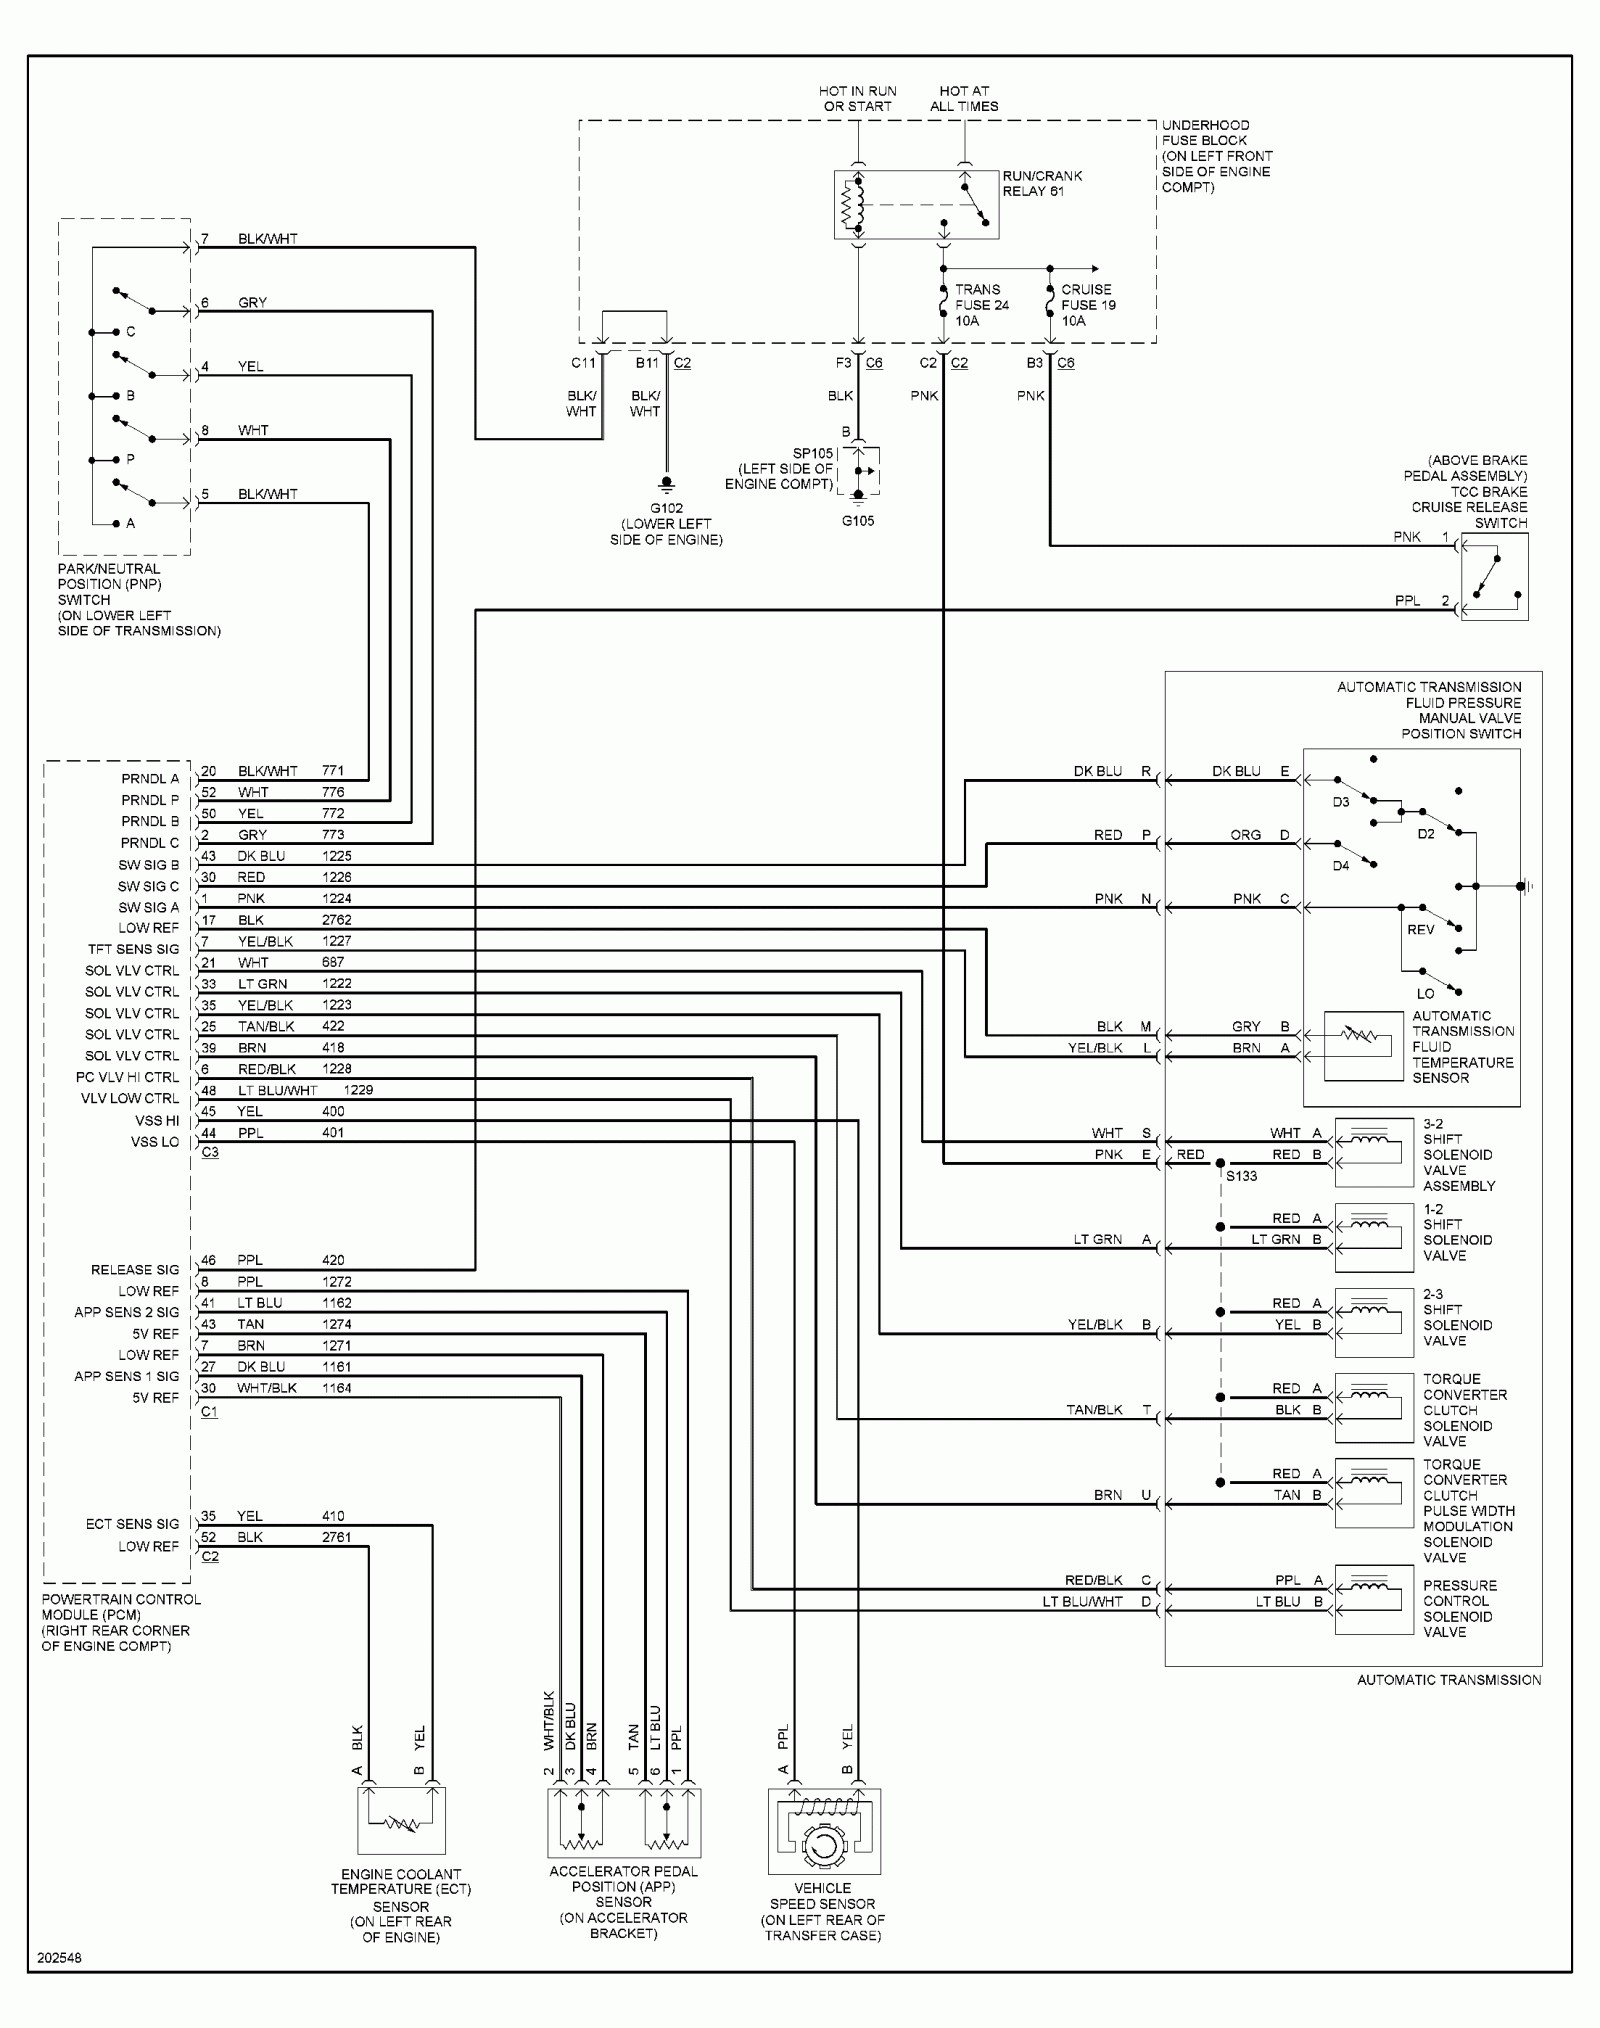 color coded wiring diagram for a sony xplod to a chevy wiring harness pioneer dxt x4869bt wiring diagram sample wiring diagram for a pioneer dxt 2369ub